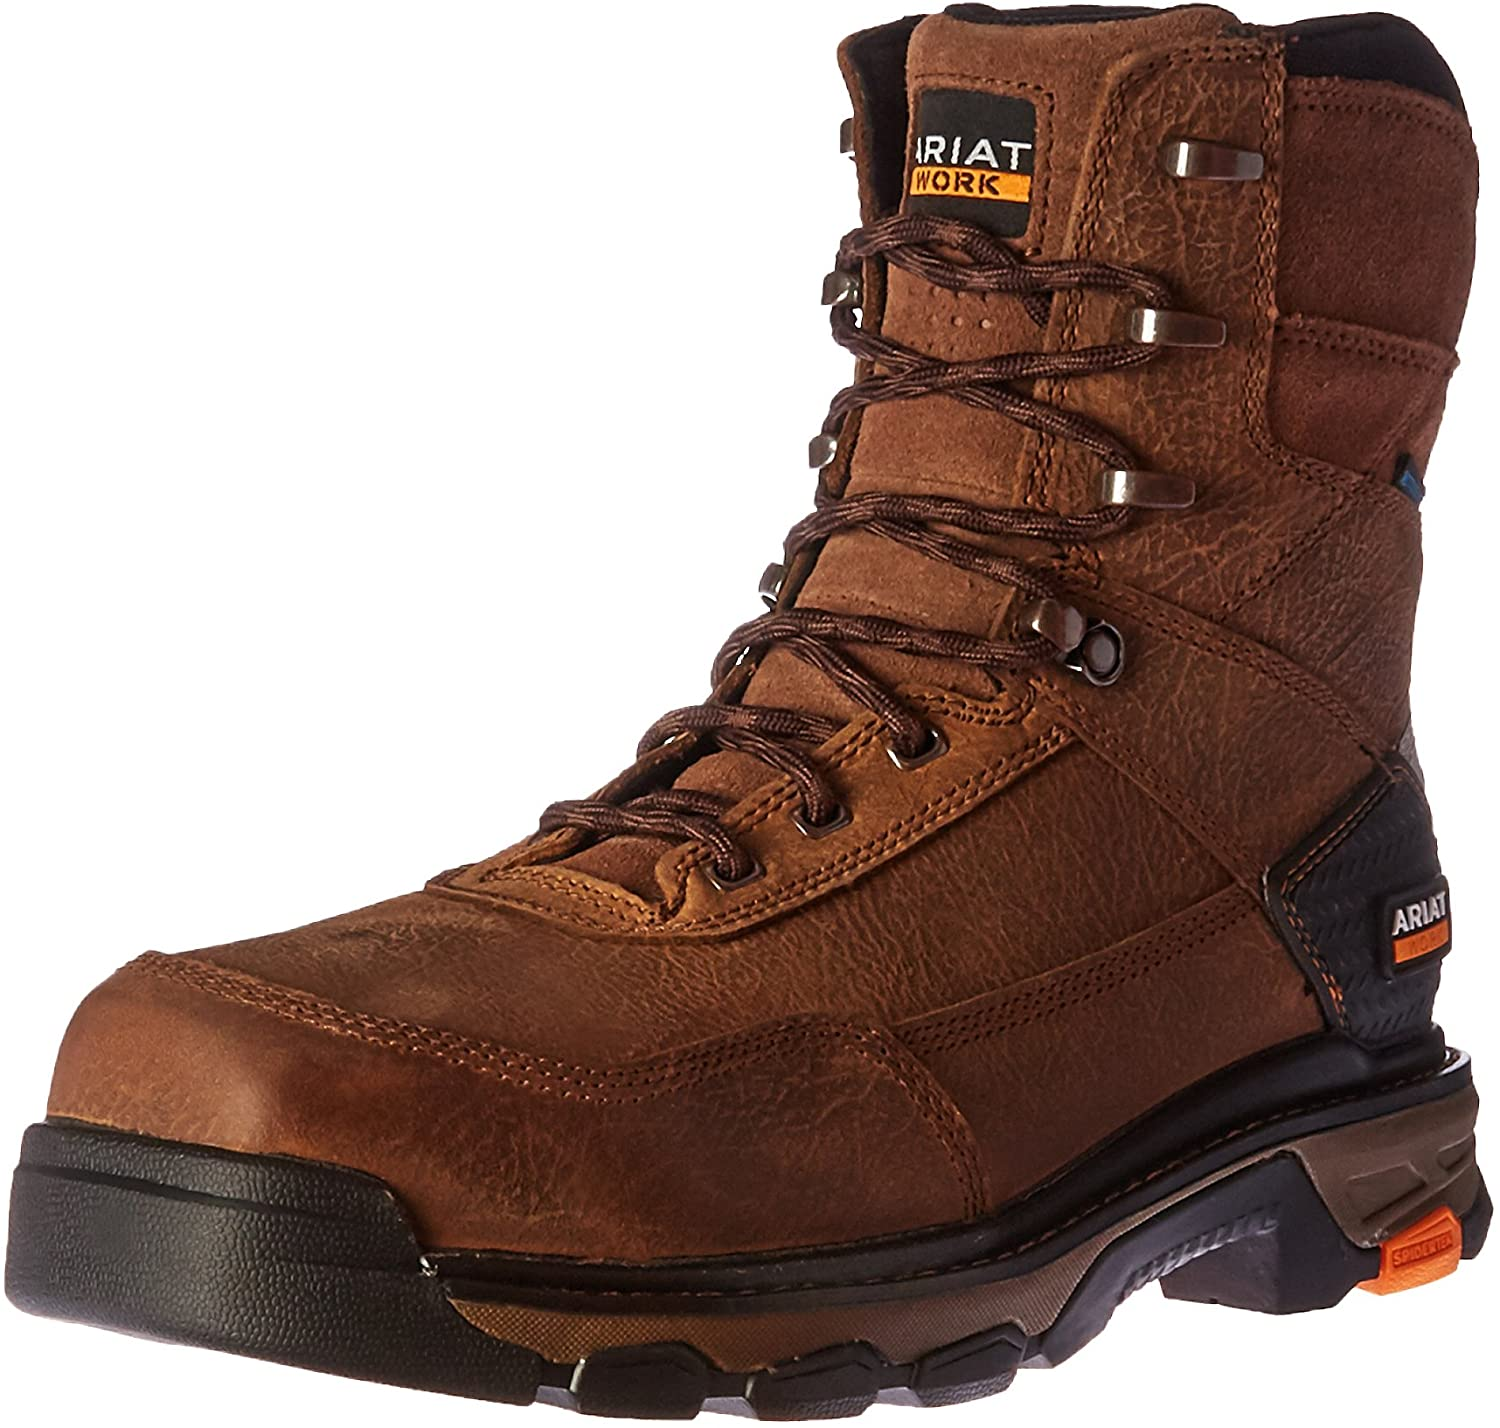 ARIAT Men's Intrepid 8